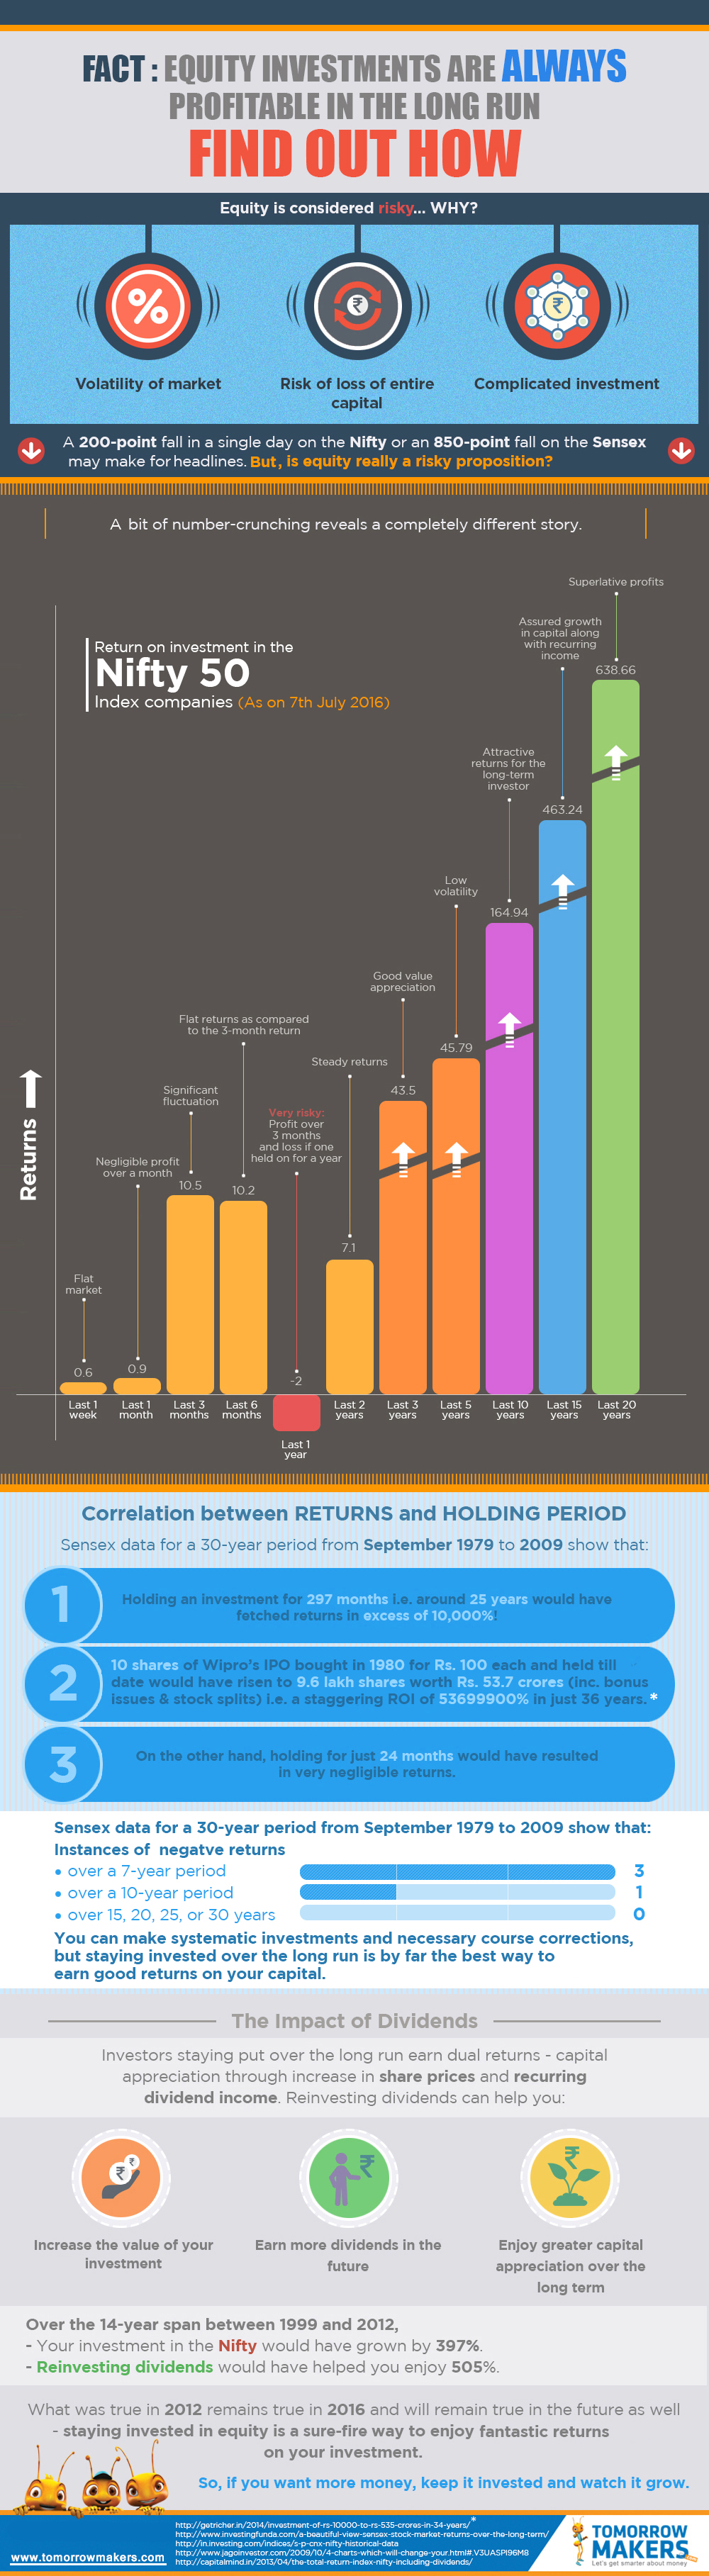 fact-equity-investments-are-always-more-profitable-in-the-long-term-infographic